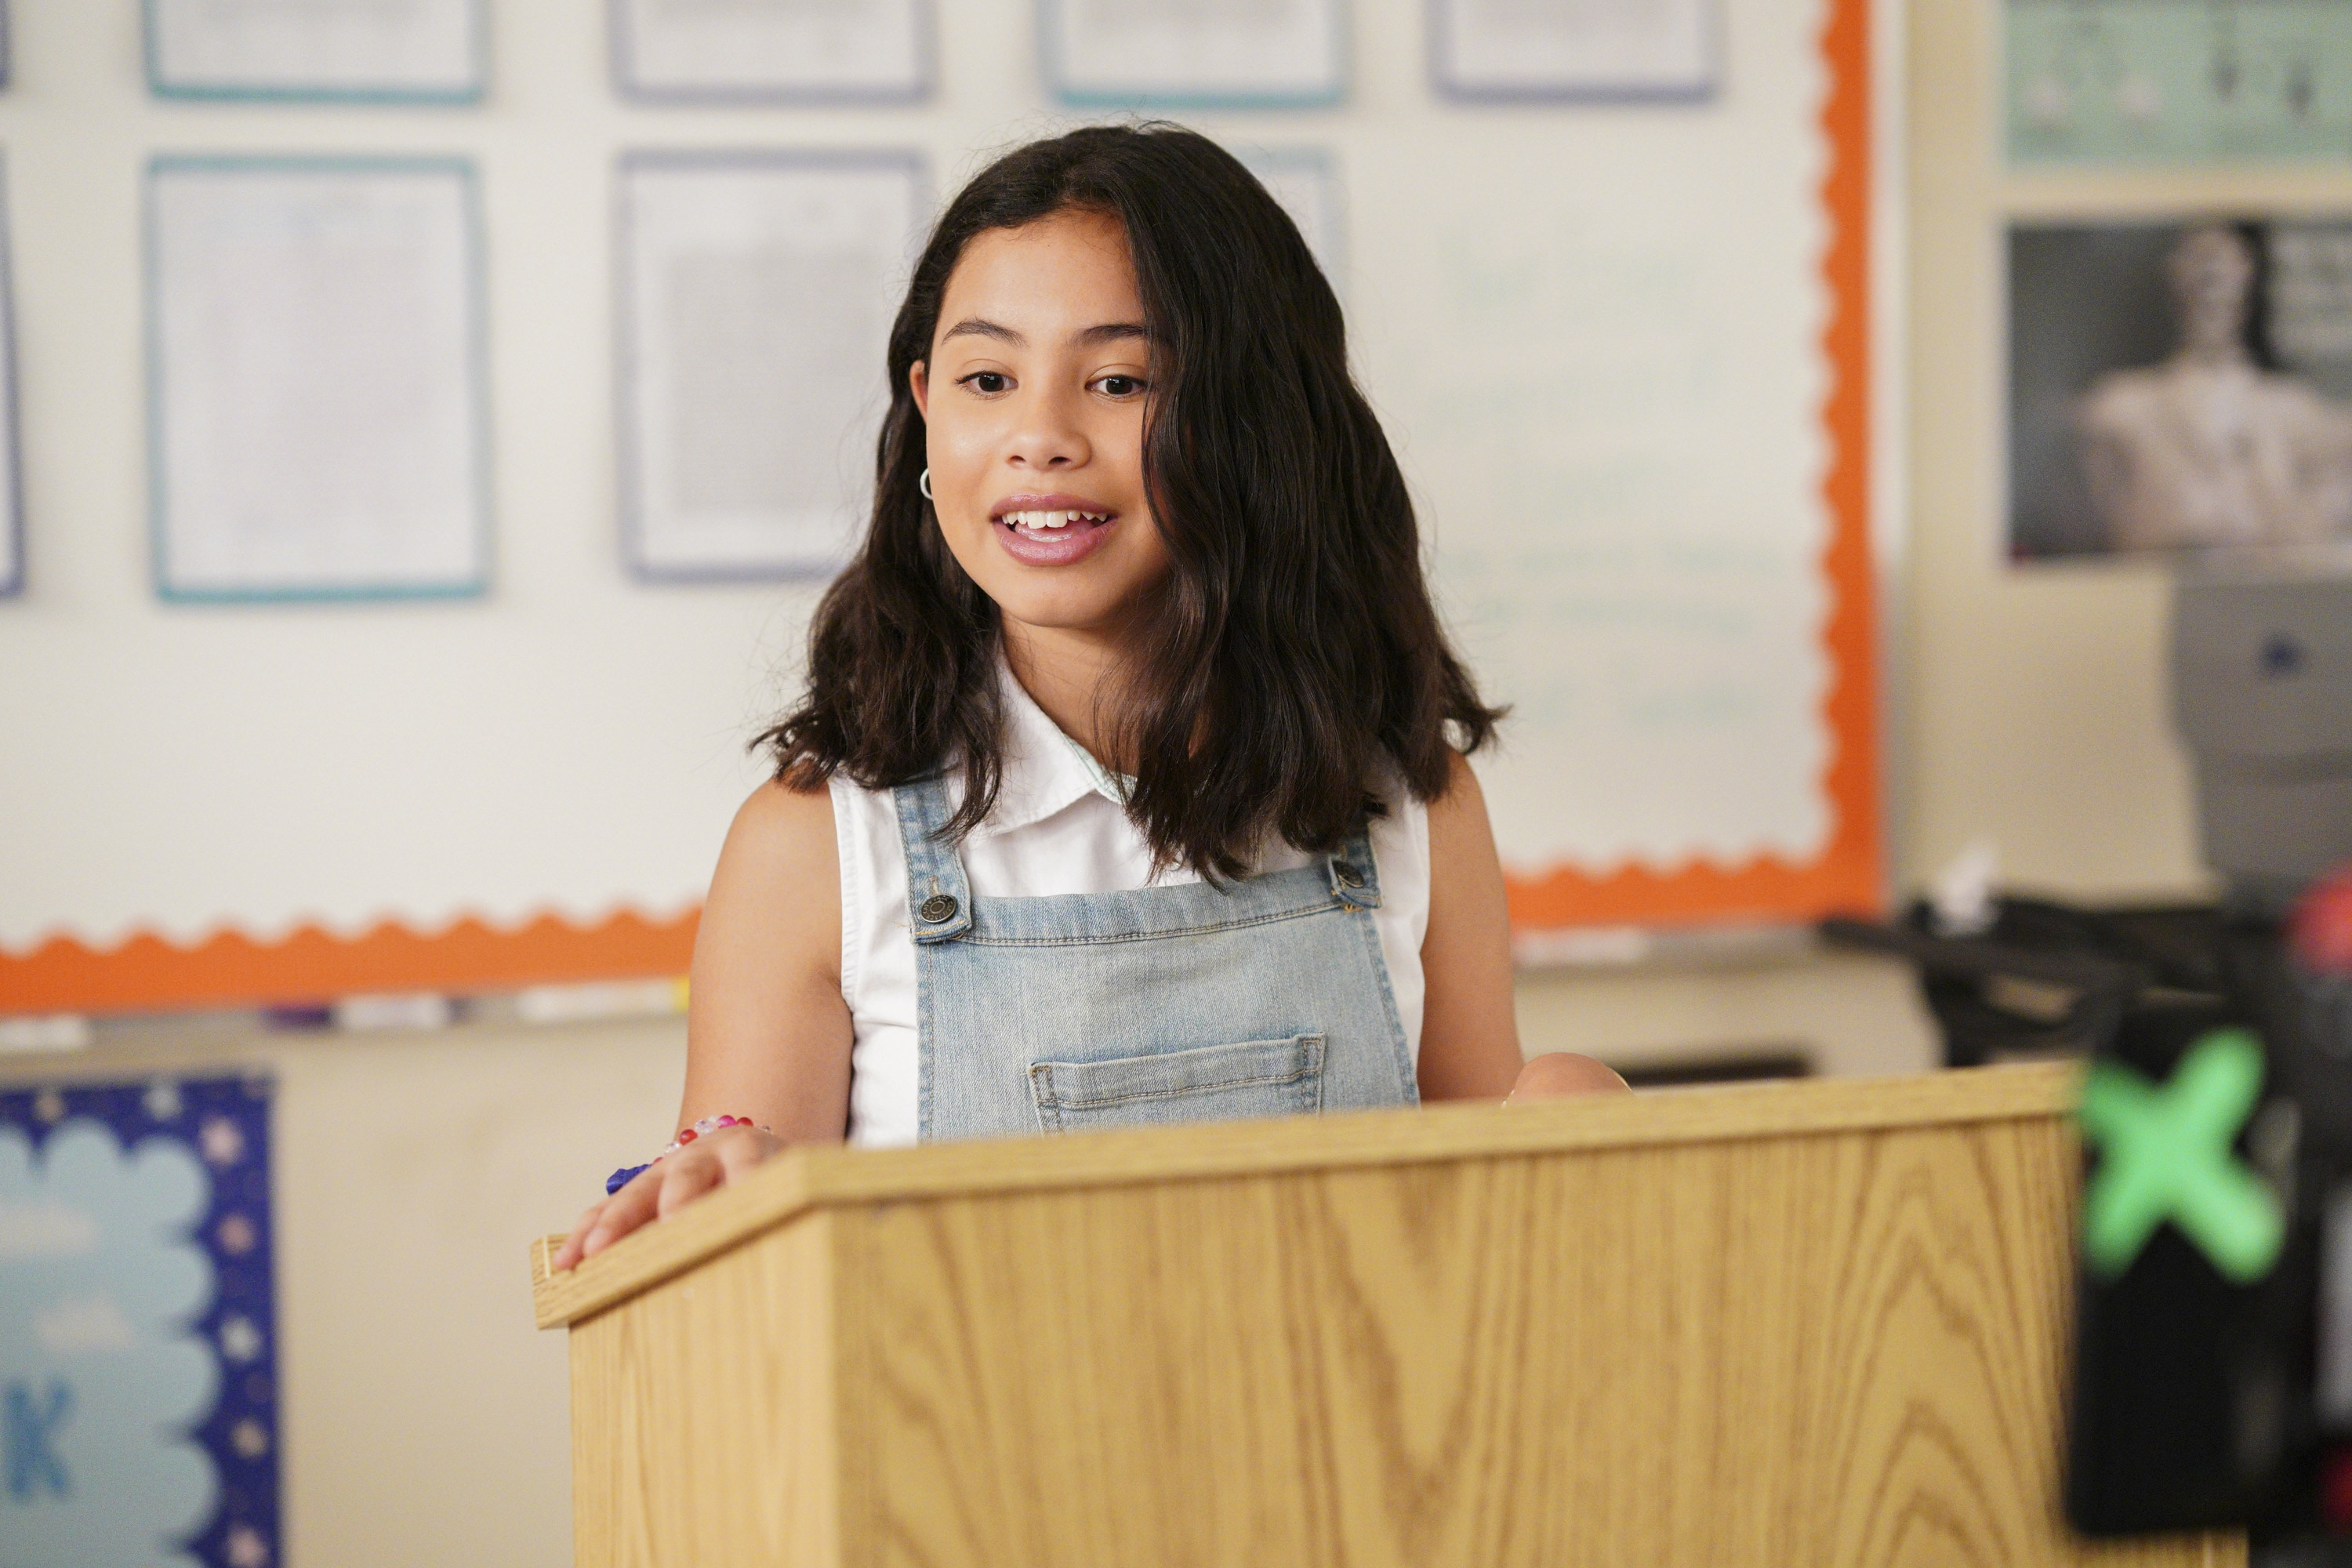 TRAILER:'Diary of a Future President' Imagines the Life of a Latina Tween Who Grows Up to Be POTUS